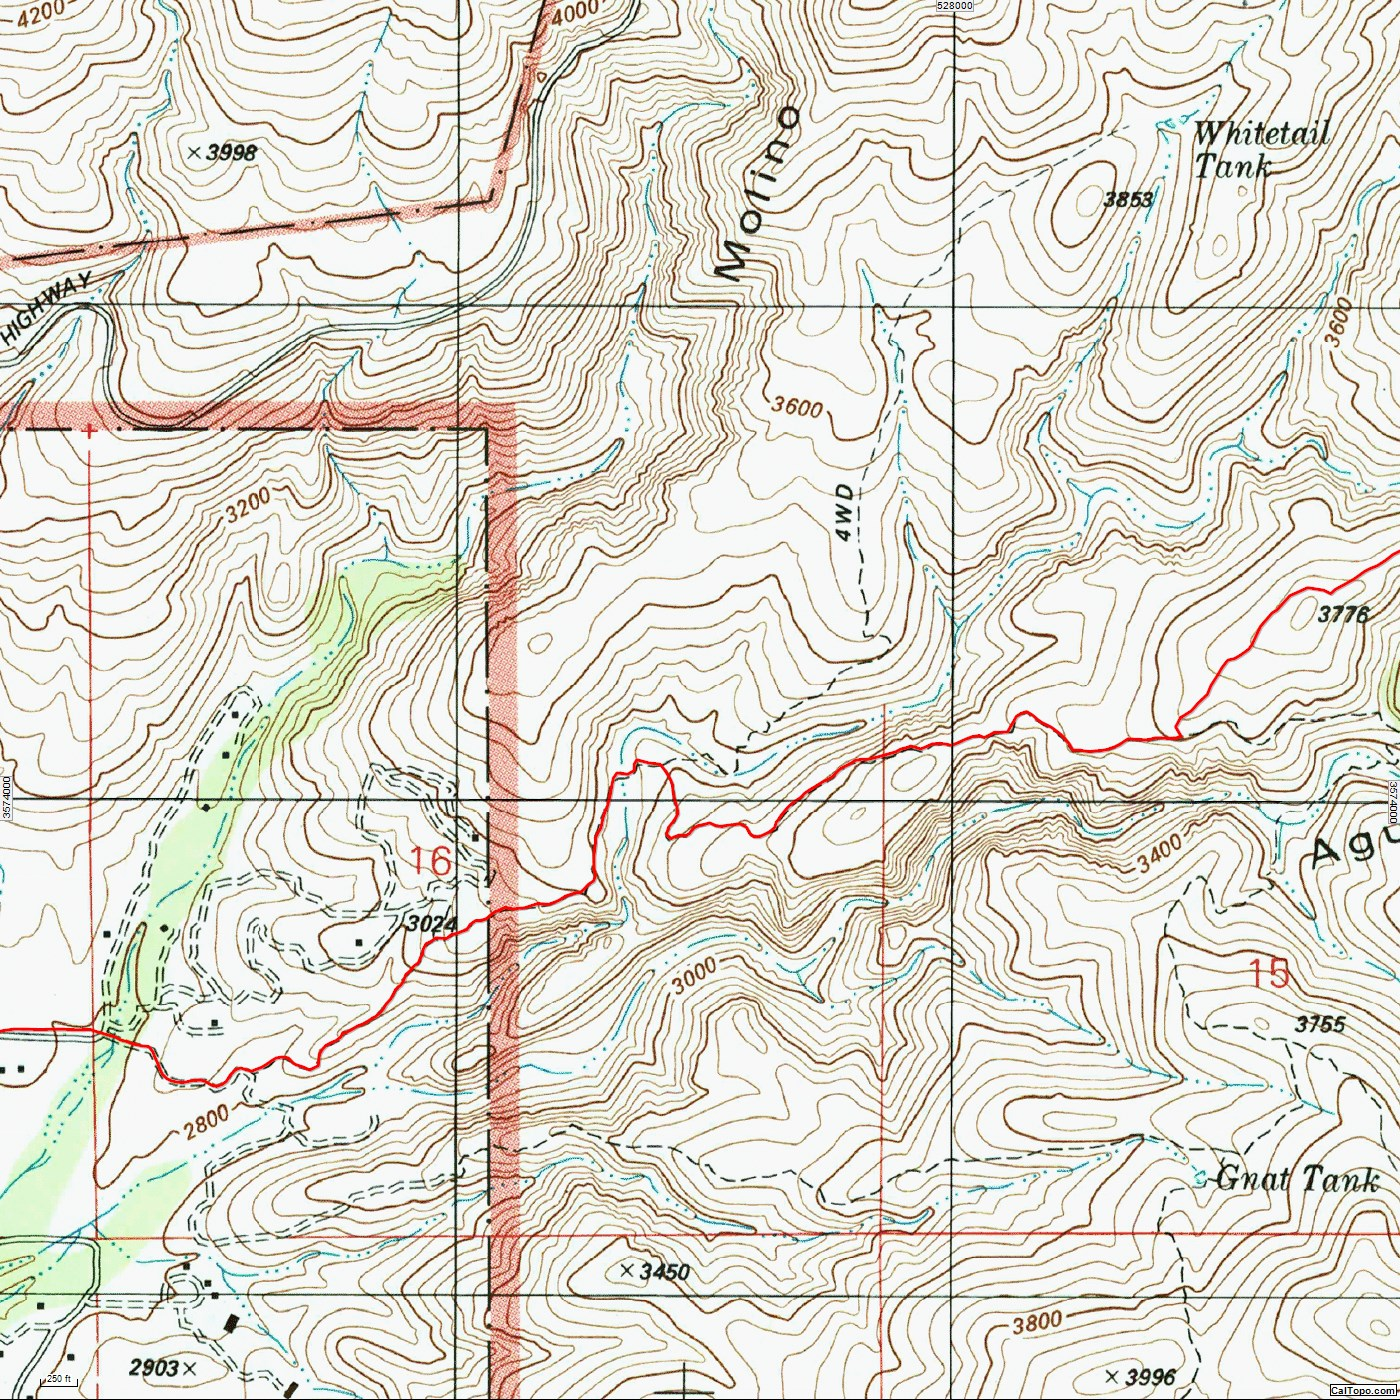 The La Milagrosa Trail in red - Horsehead Road (where the hike starts) on the left - Forest Road 4446 to Whitetail Tank (marked 4WD) breaks from the La Milagrosa Trail near La Milagrosa Canyon